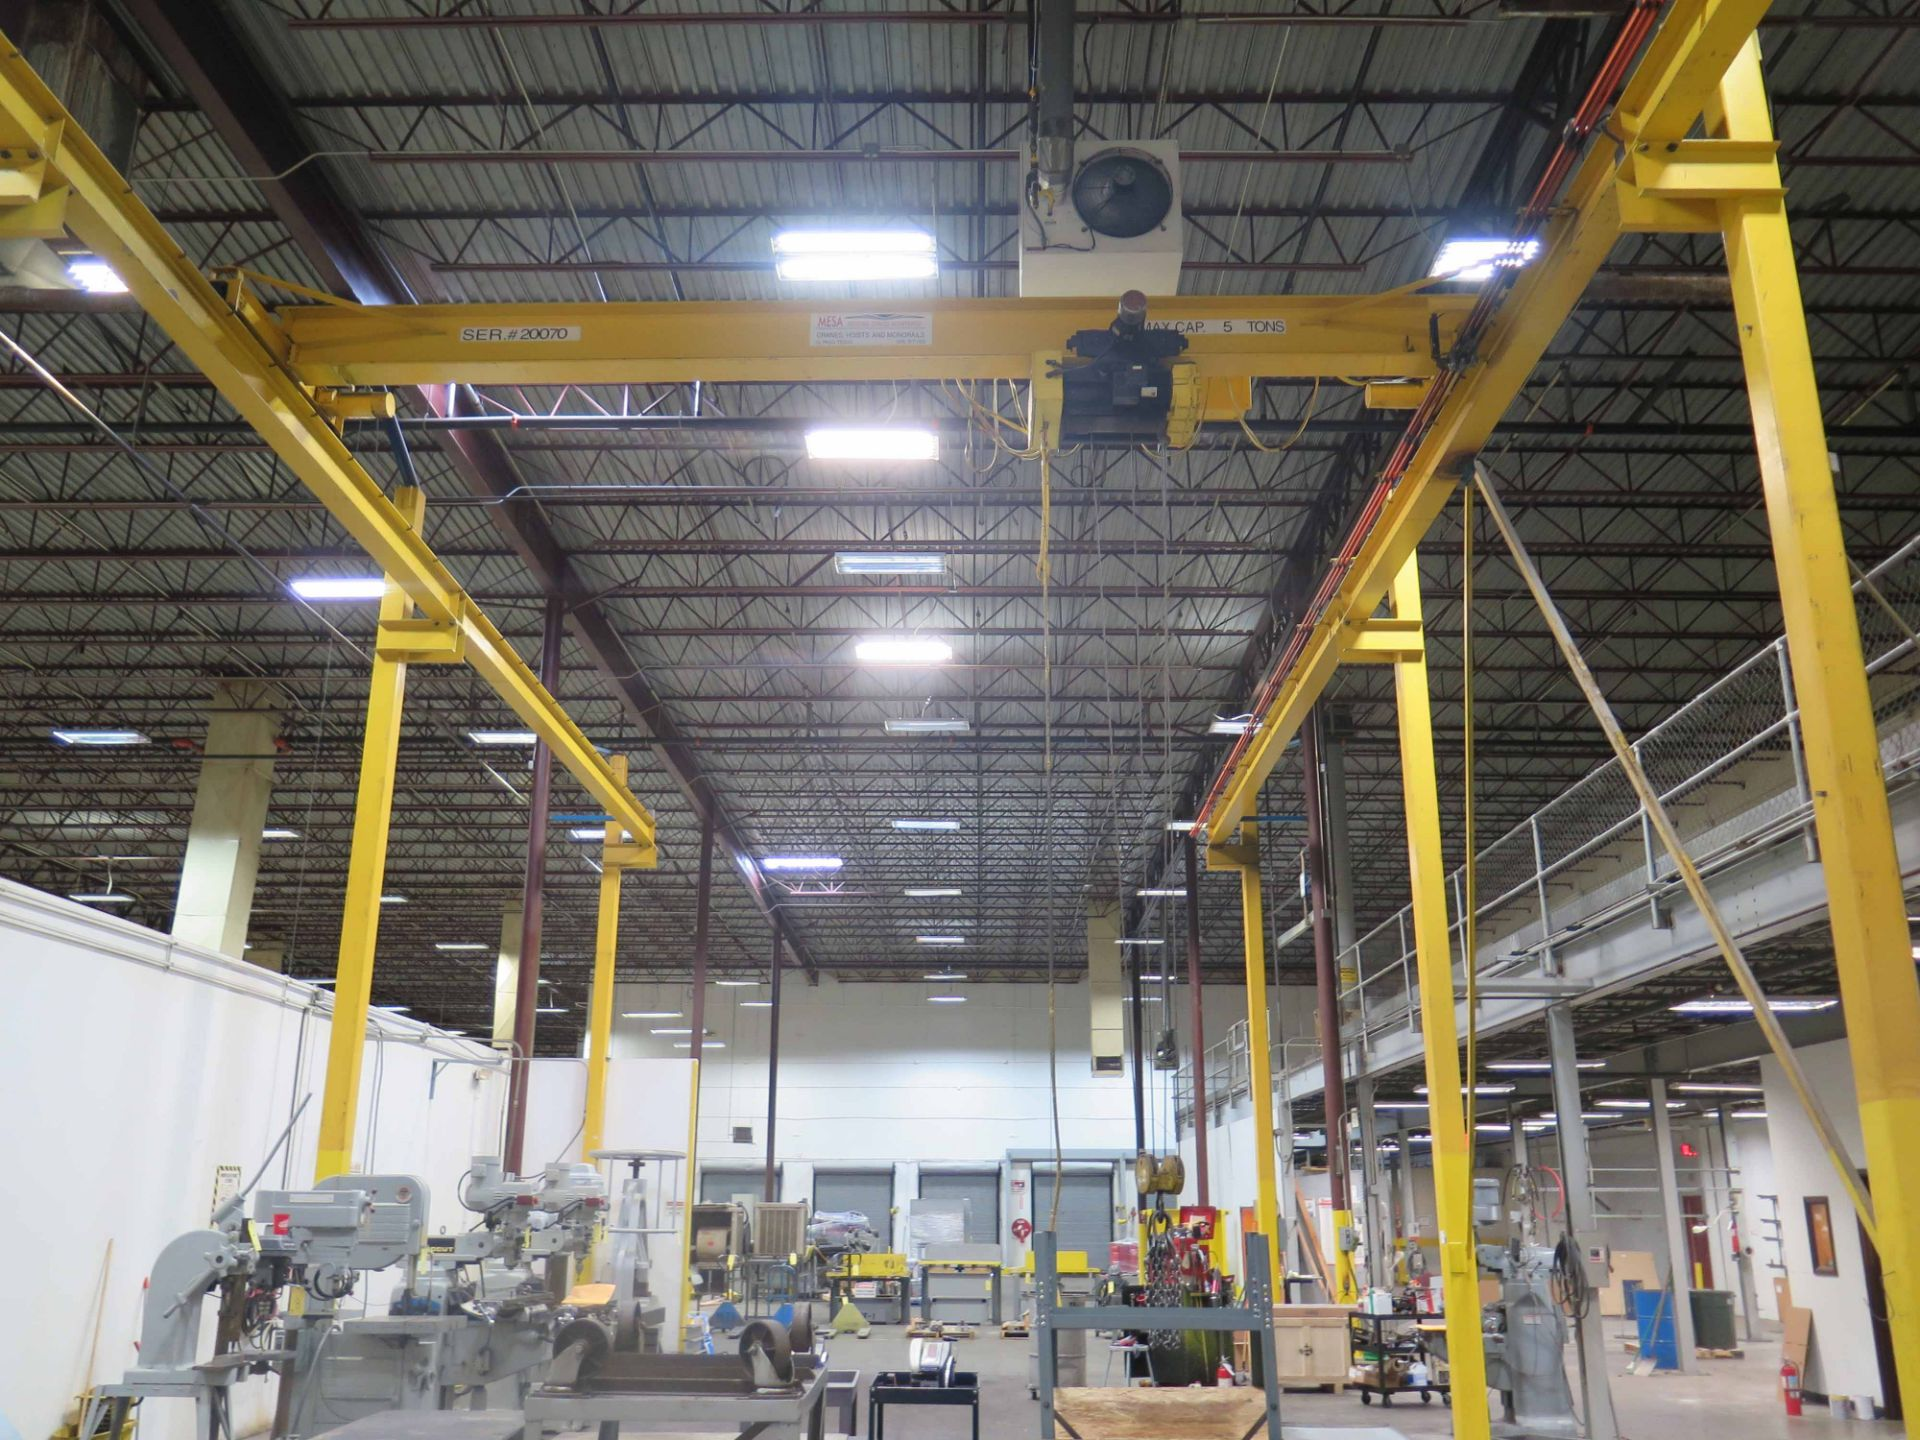 Lot 37 - FLOOR MOUNTED OVERHEAD CRANE SYSTEM, R & M SPACEMASTER MDL. SC518, 68' L. x 28' W. x 22' ht., 5 T.